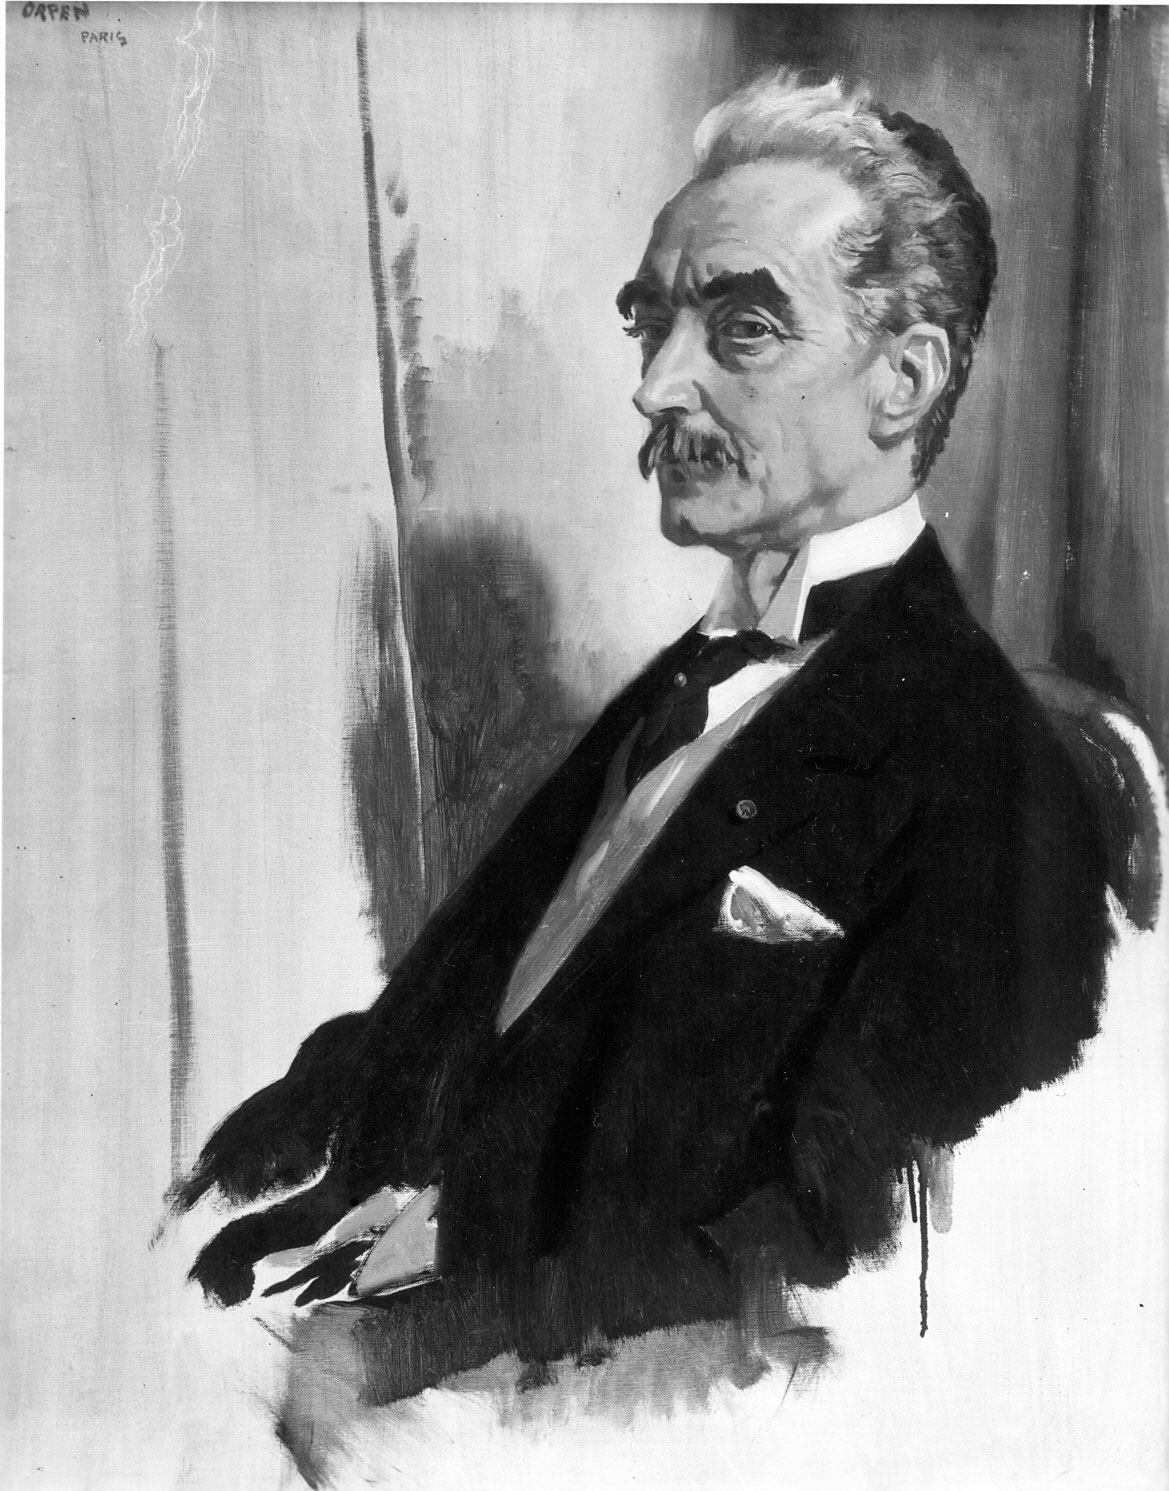 William Orpen : Portret van mijnheer Paul Hymans